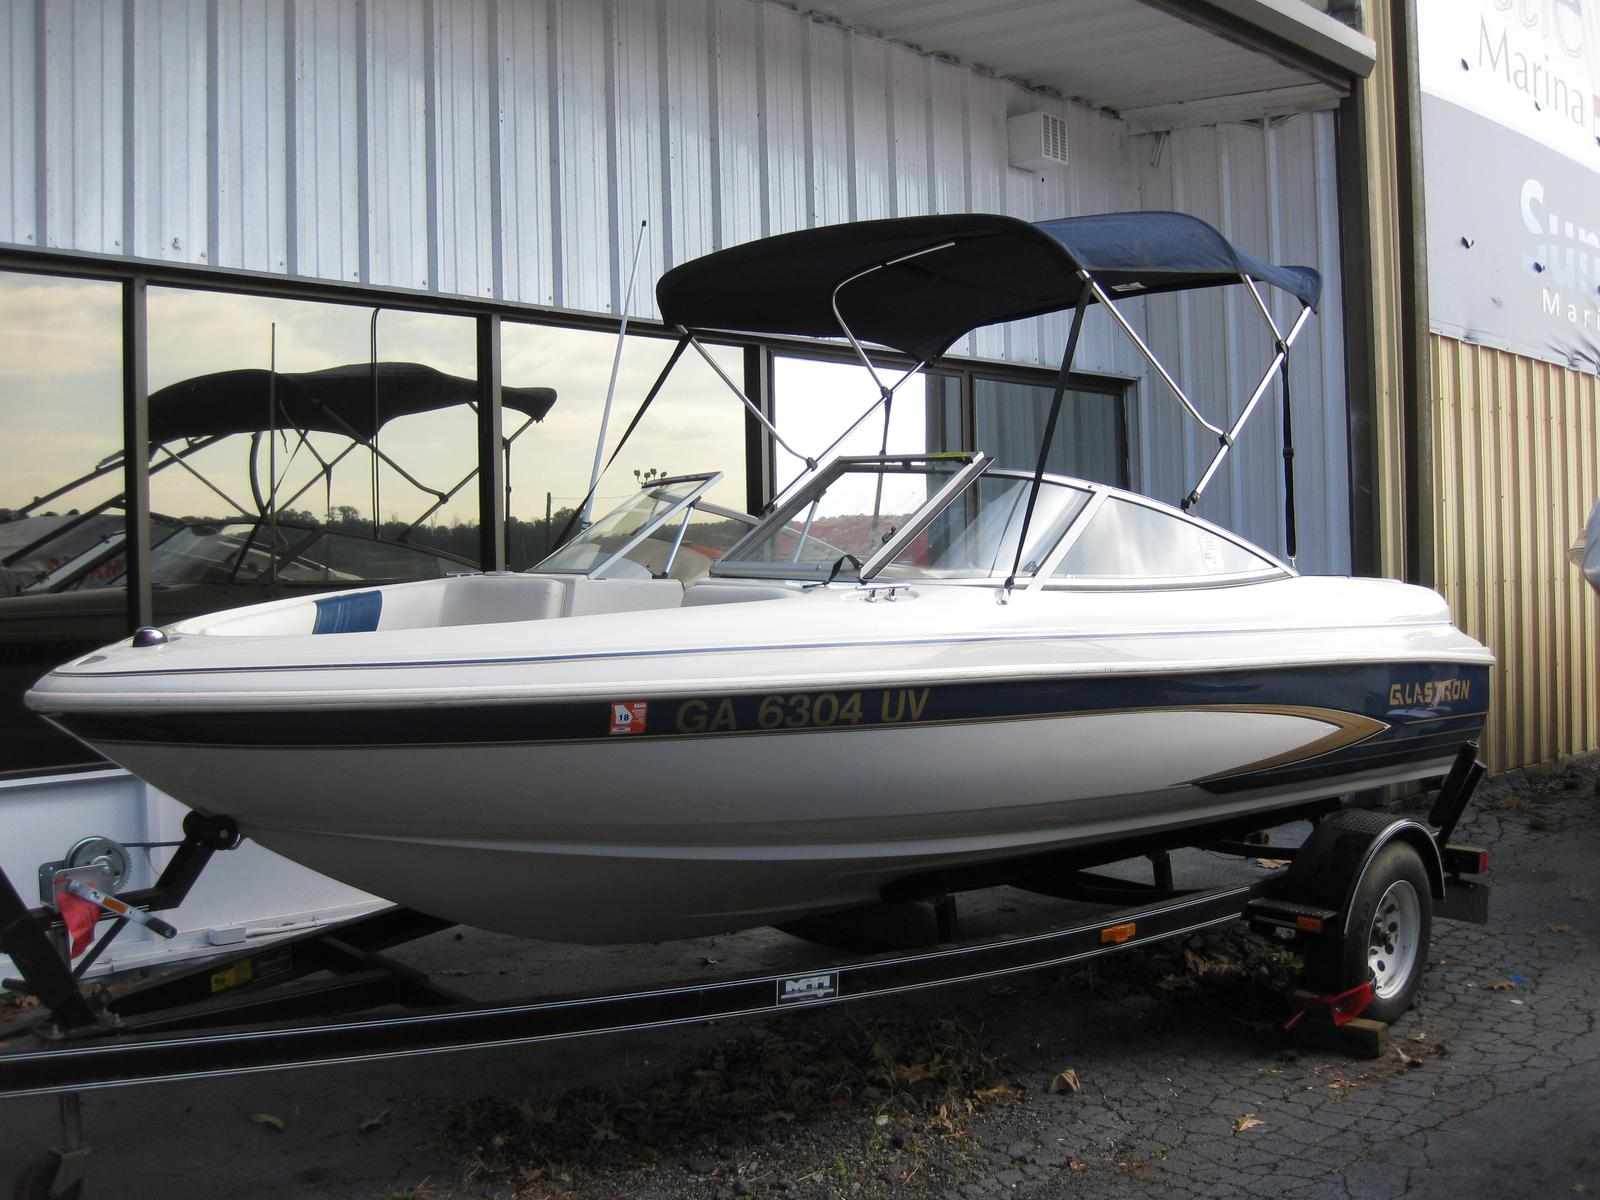 1997 glastron se 175 17 foot 1997 glastron motor boat in for Used outboard motors for sale in ga